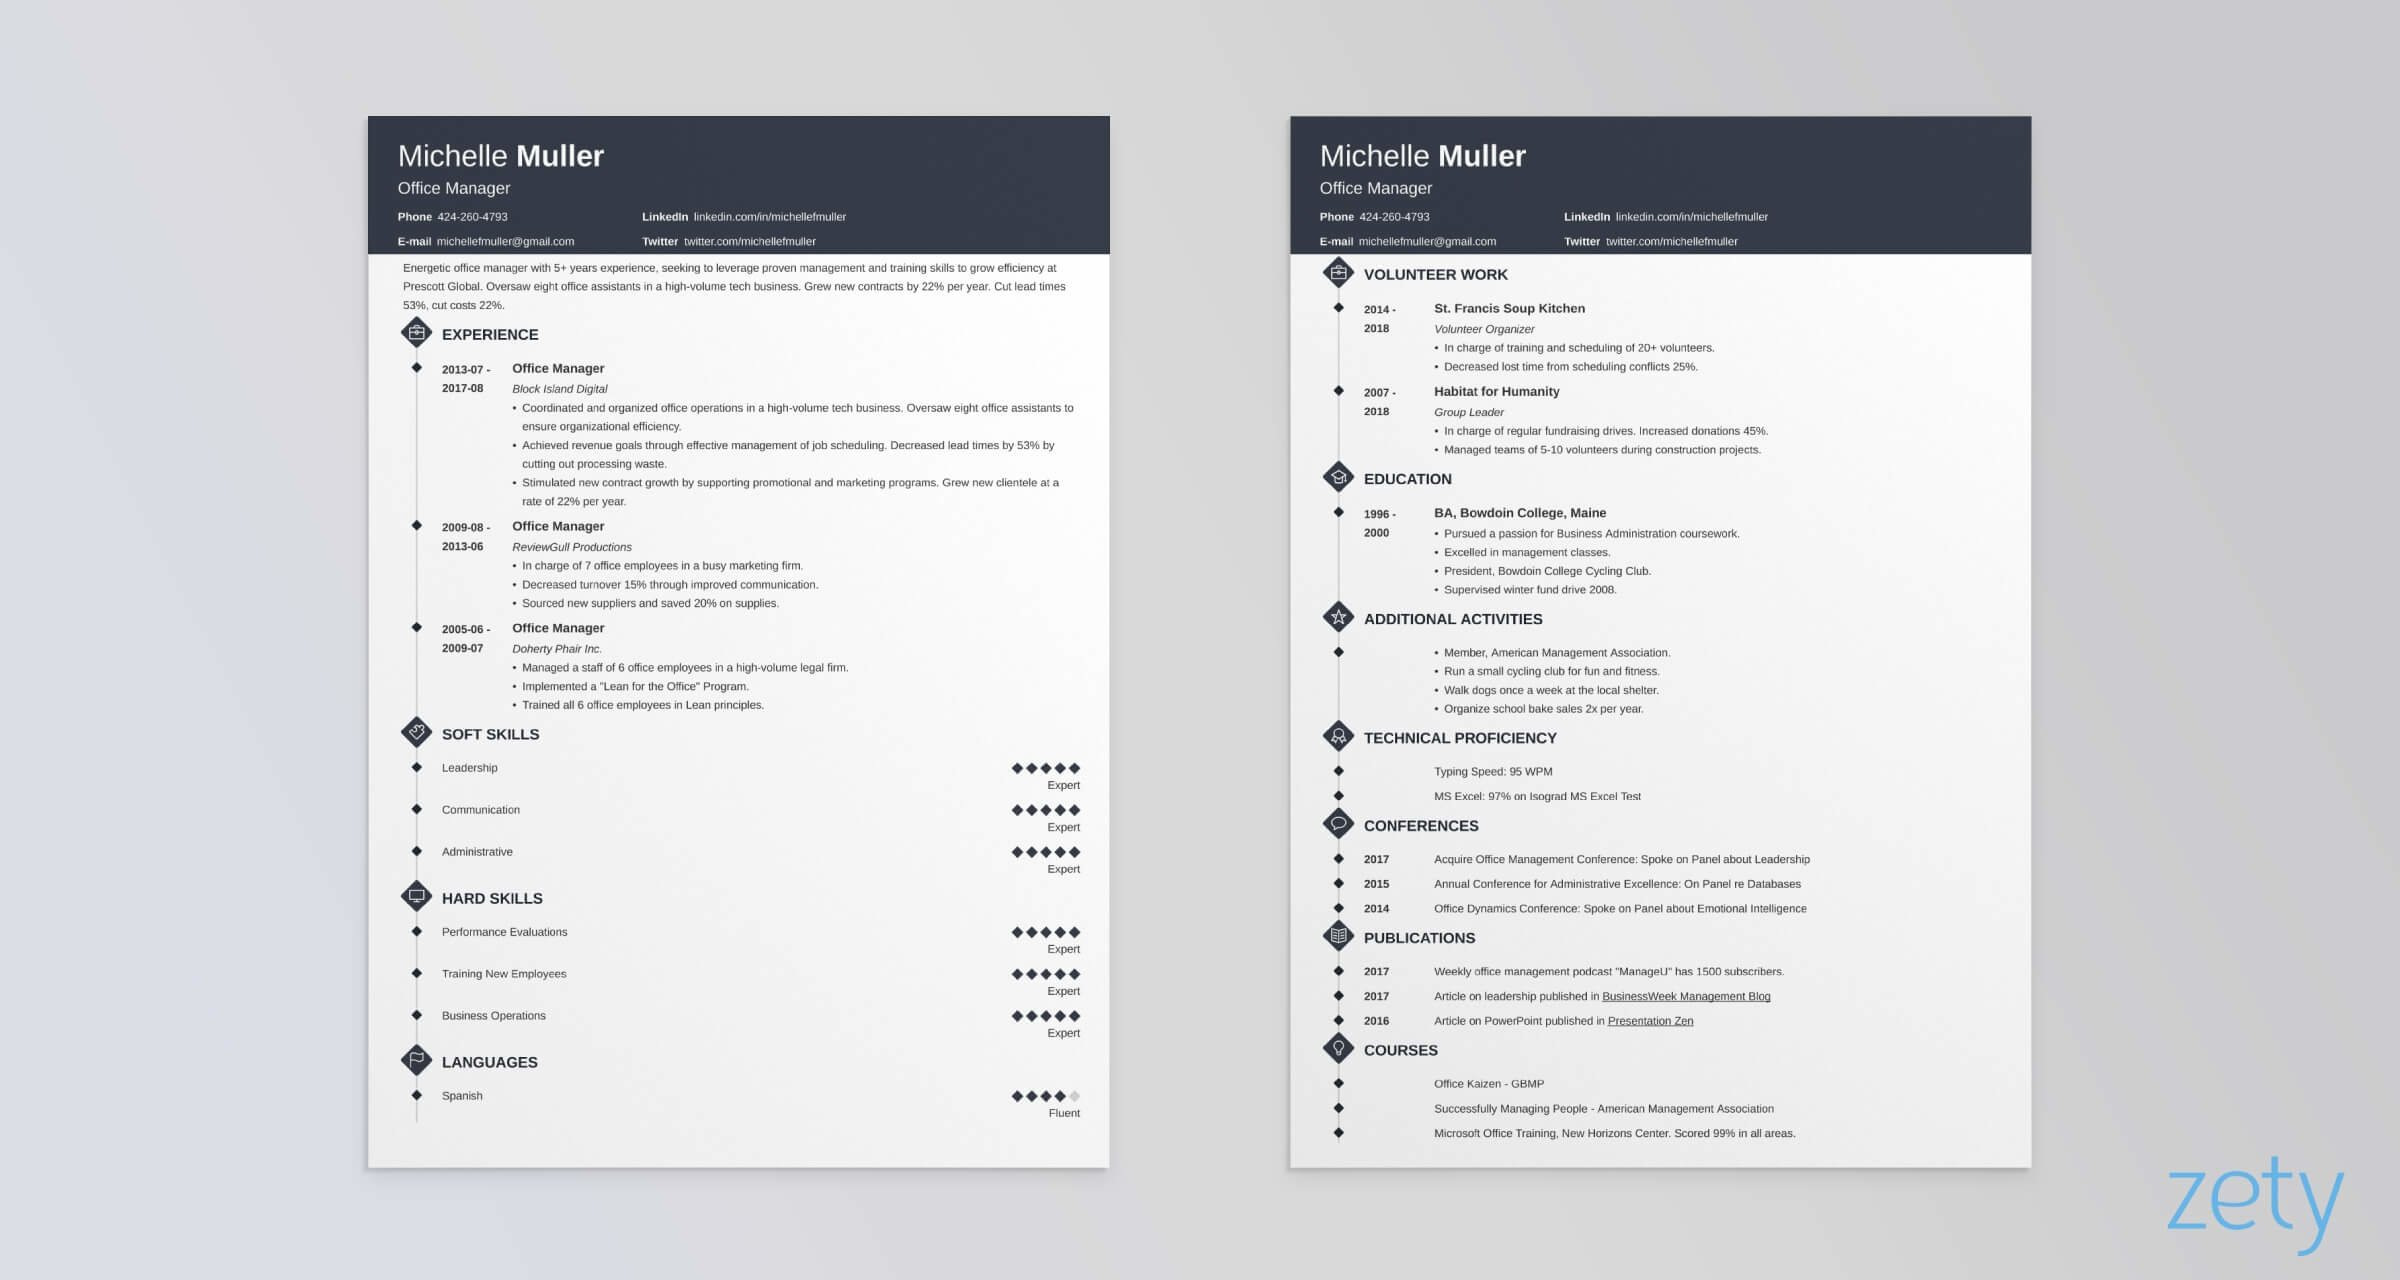 resume it crush your chances format tips best two diamond1 sample for chaplain position Resume Best Two Page Resume Format